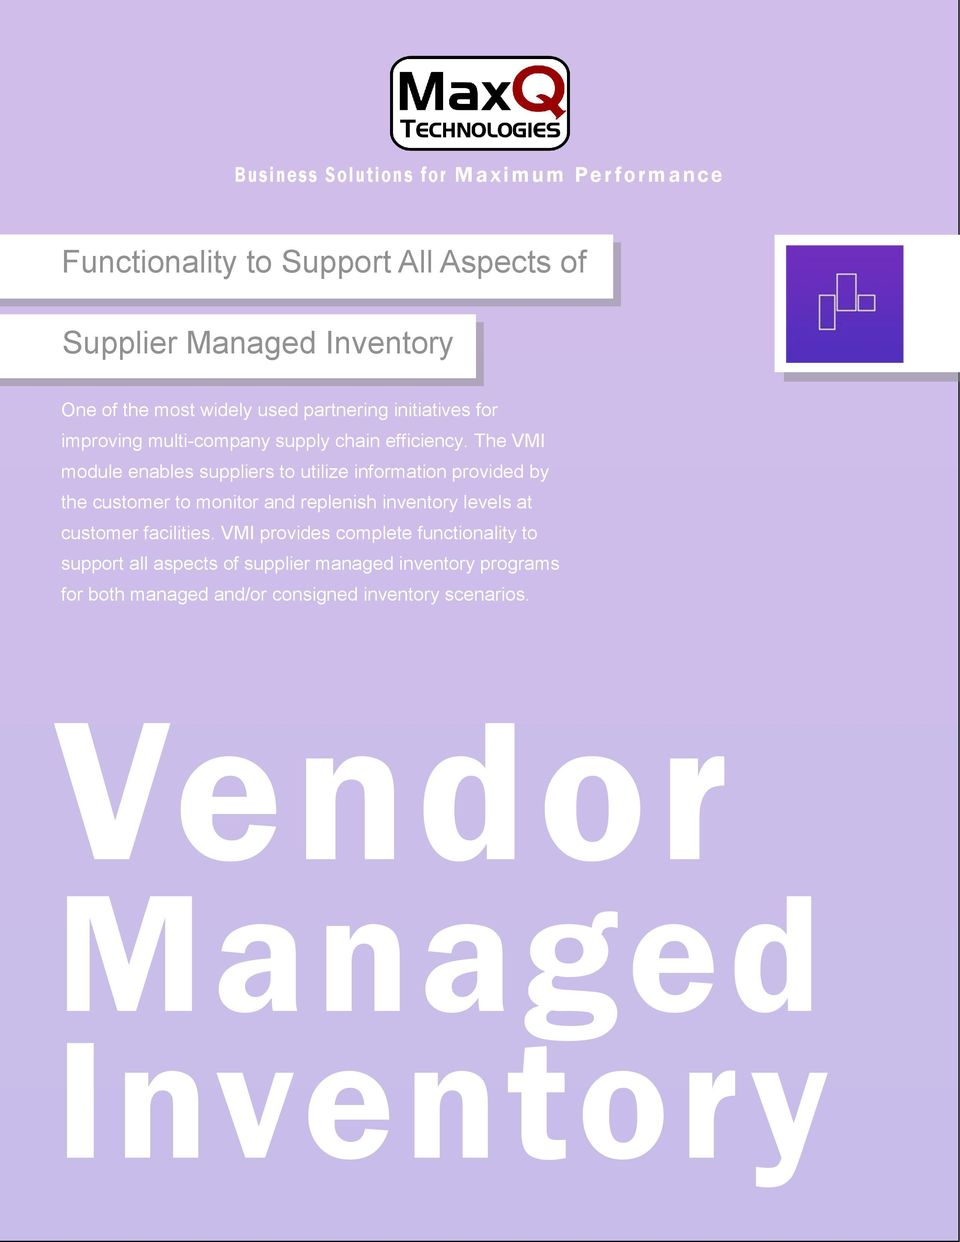 The VMI module enables suppliers to utilize information provided by the customer to monitor and replenish inventory levels at customer